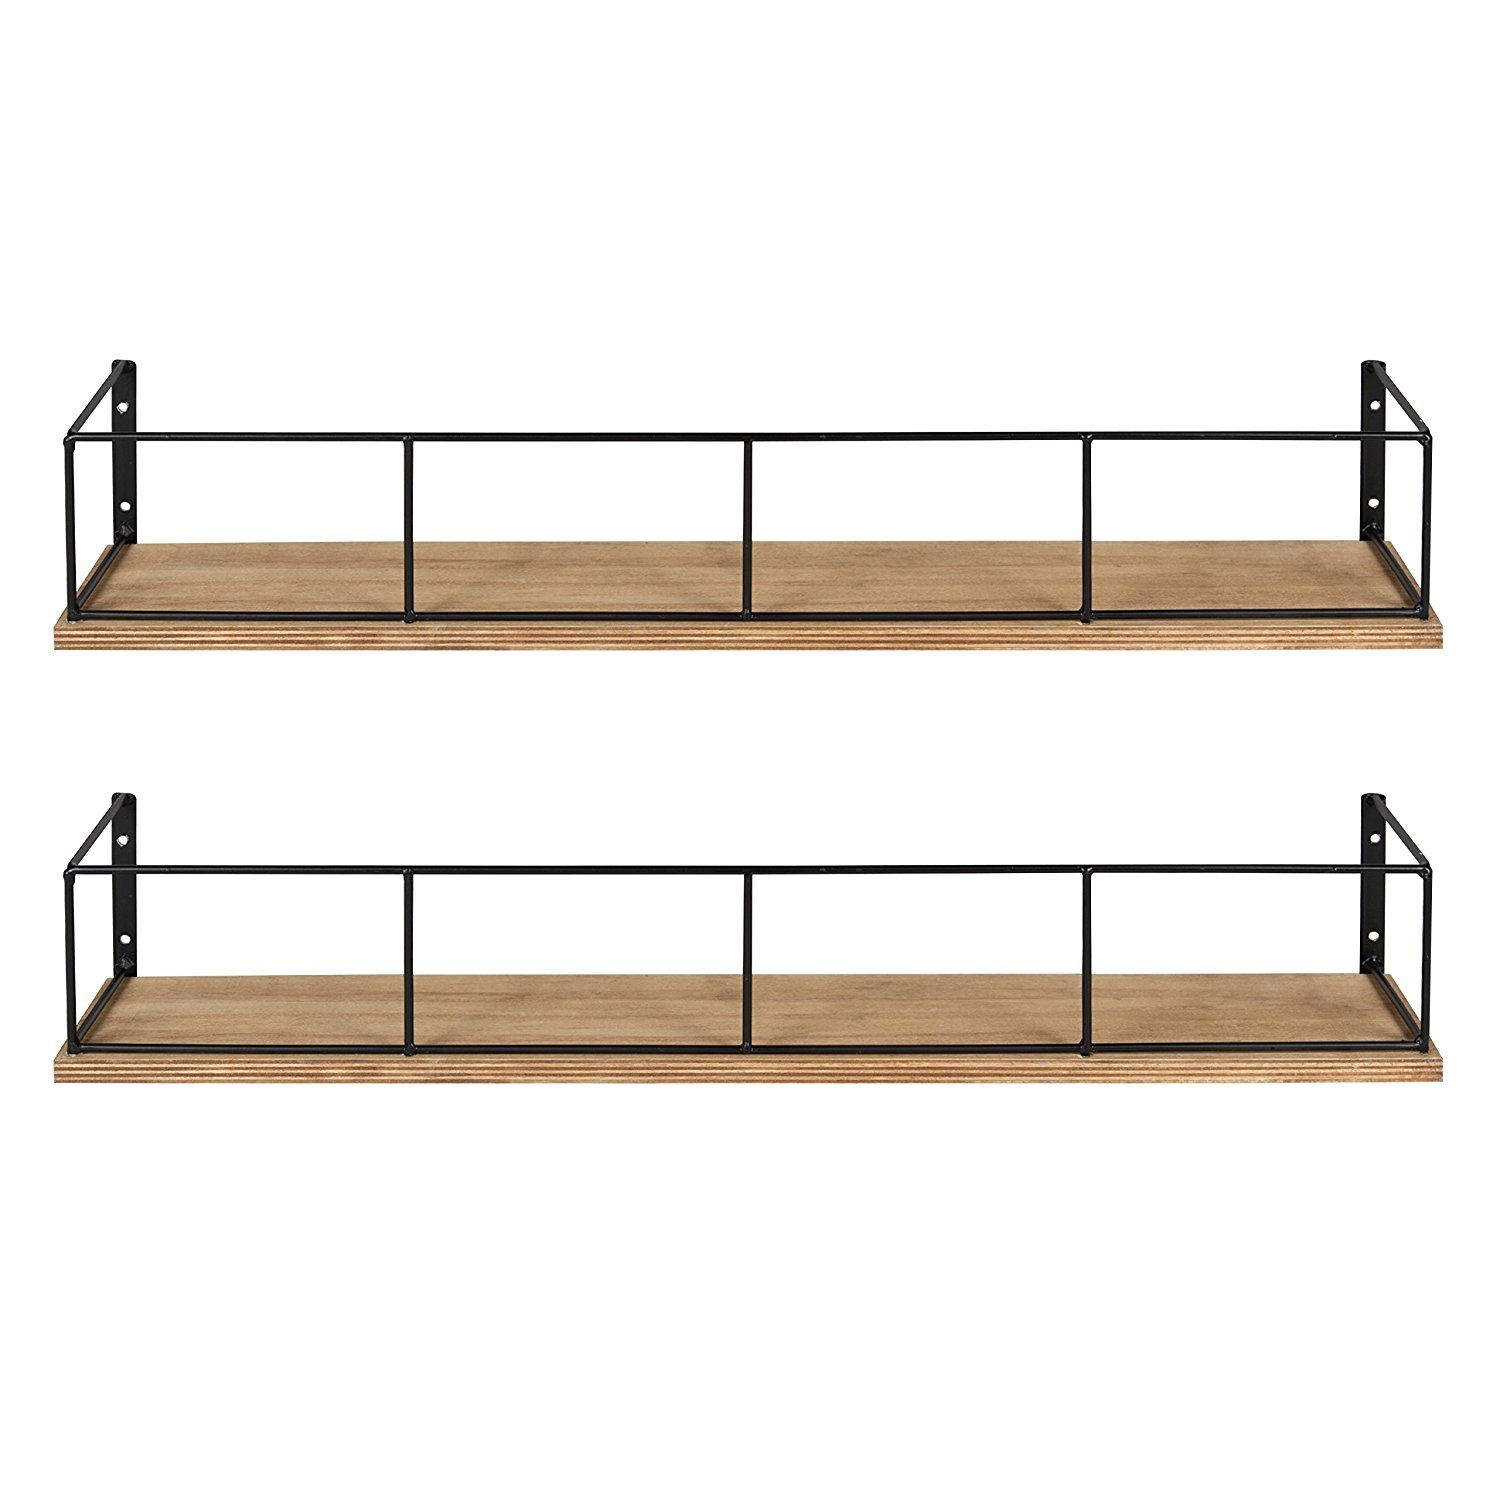 Amazon Com Kate And Laurel Benbrook 24 Inch 2 Pack Wood And Metal Floating Wall Shelves Rustic Brown And Black Home Kitchen Banheiro